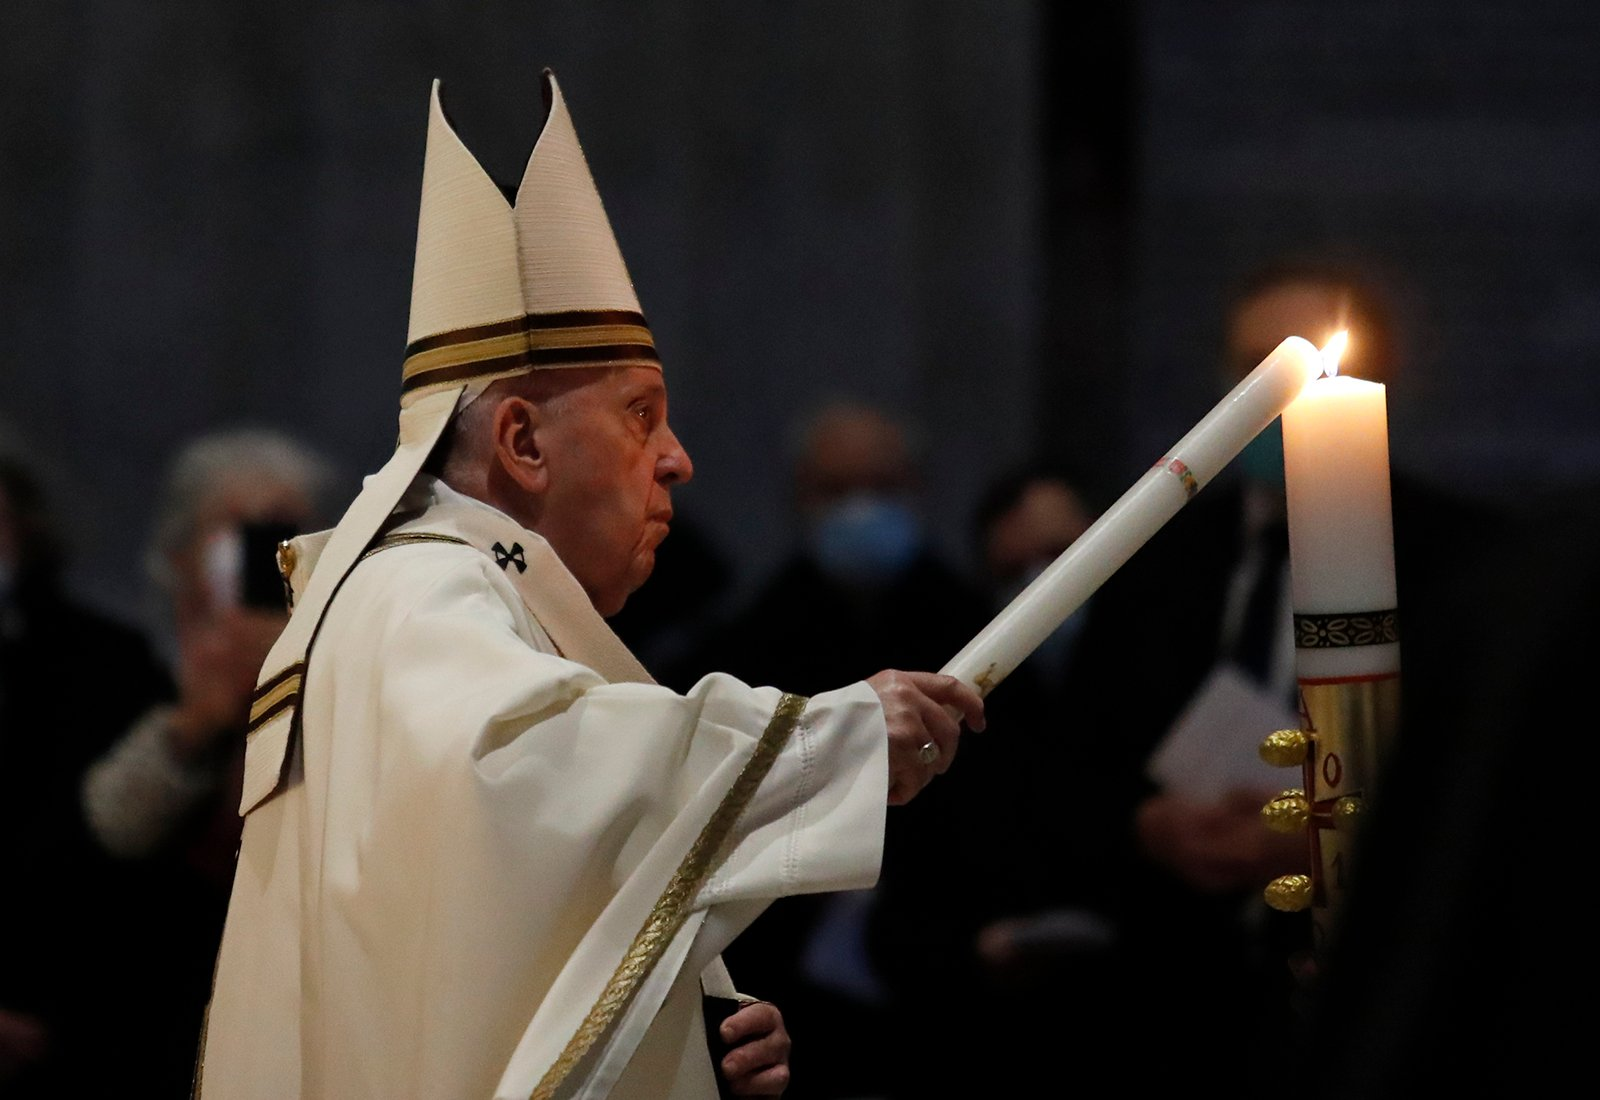 Pope Francis celebrates the Easter Vigil in St. Peter's Basilica as coronavirus pandemic restrictions stay in place for a second year running, at the Vatican, Saturday, April 3, 2021. (Remo Casilli/Pool photo via AP)